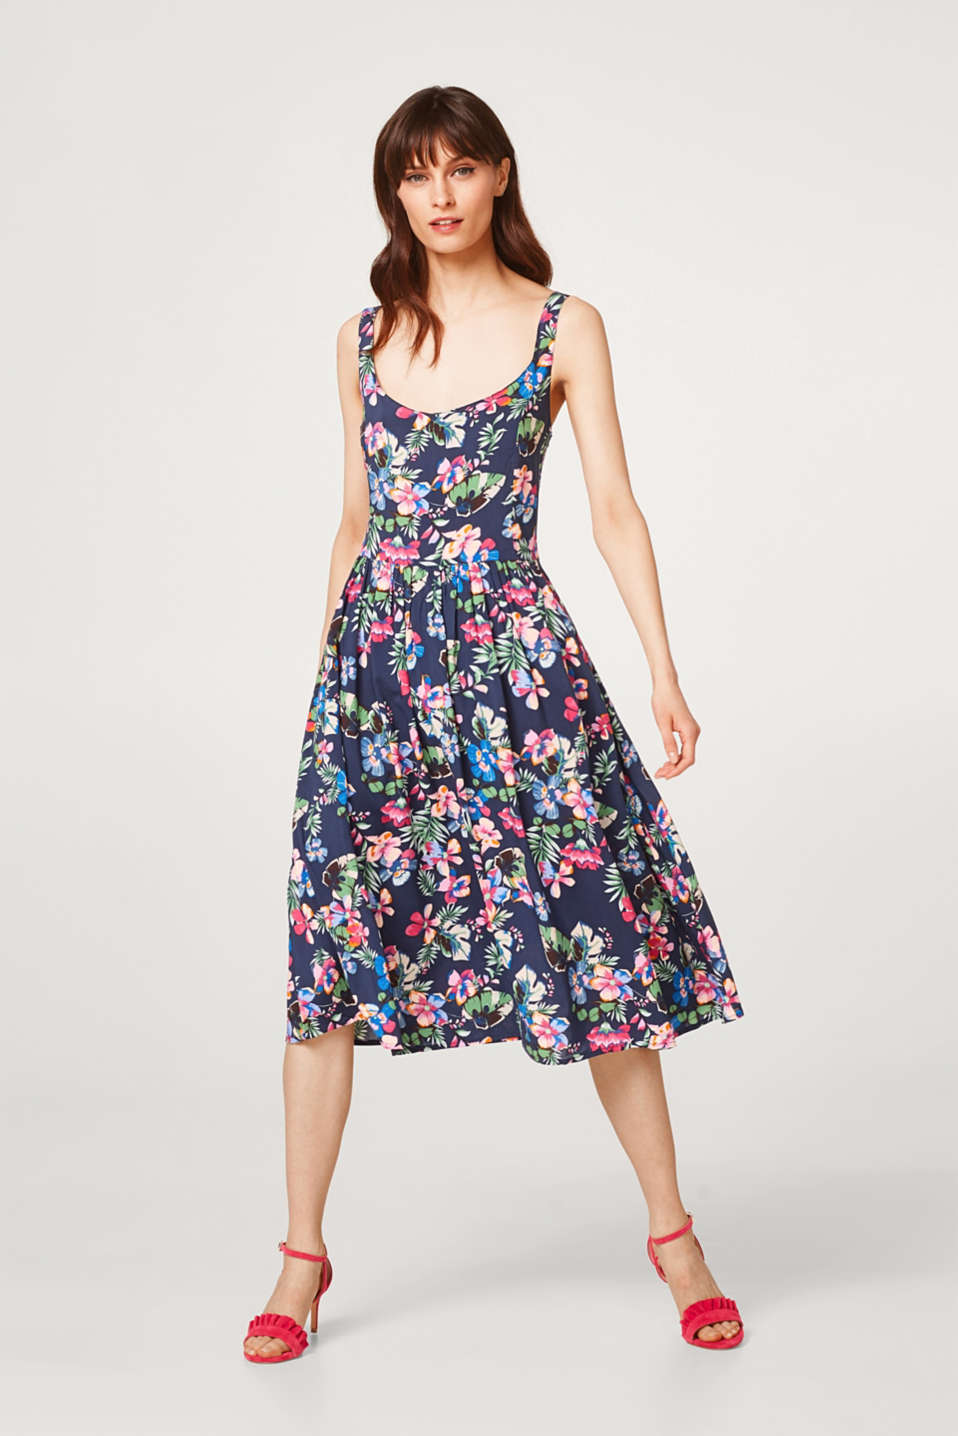 Wide swirling dress with a floral print